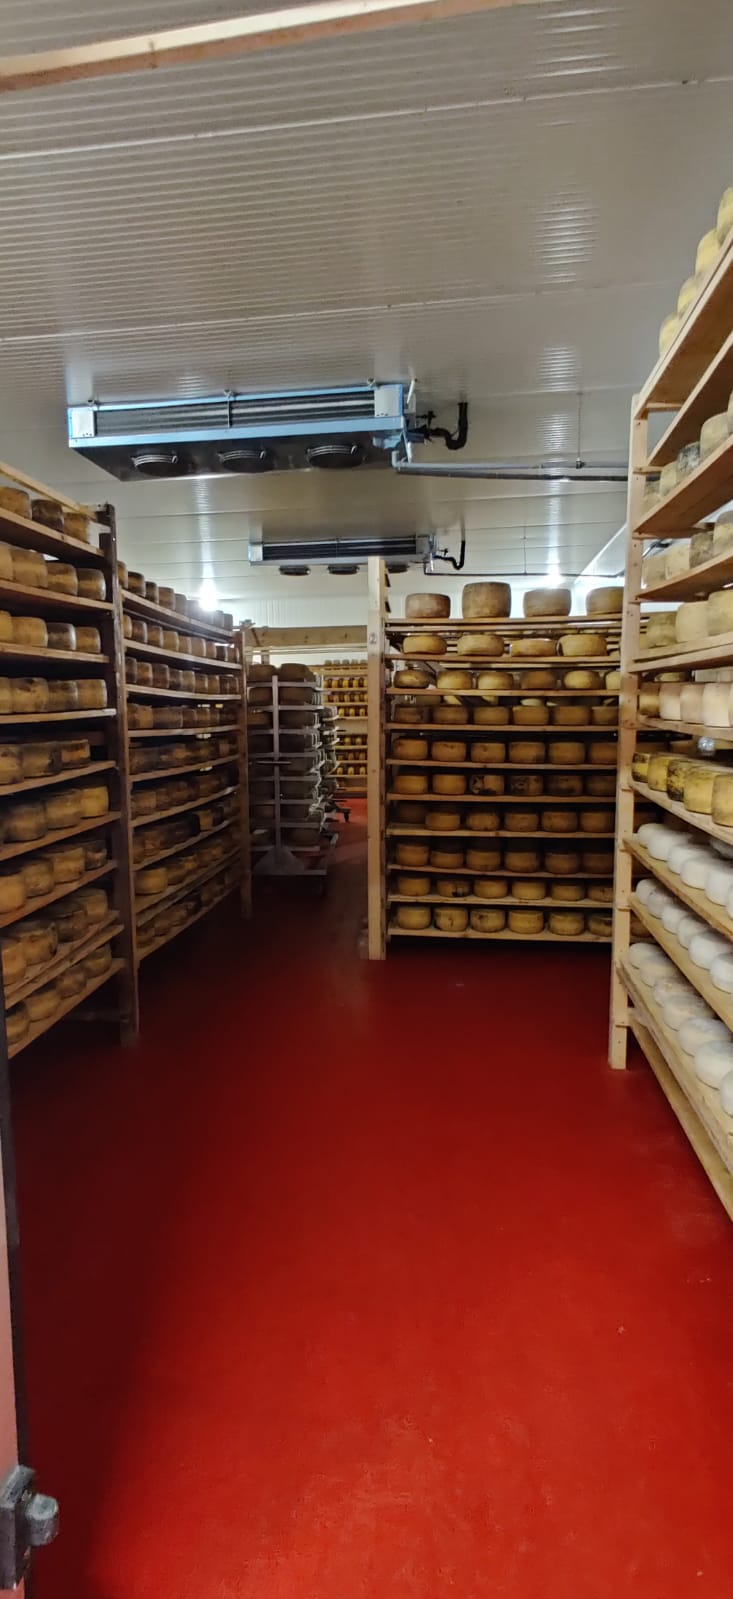 Cheese aging room